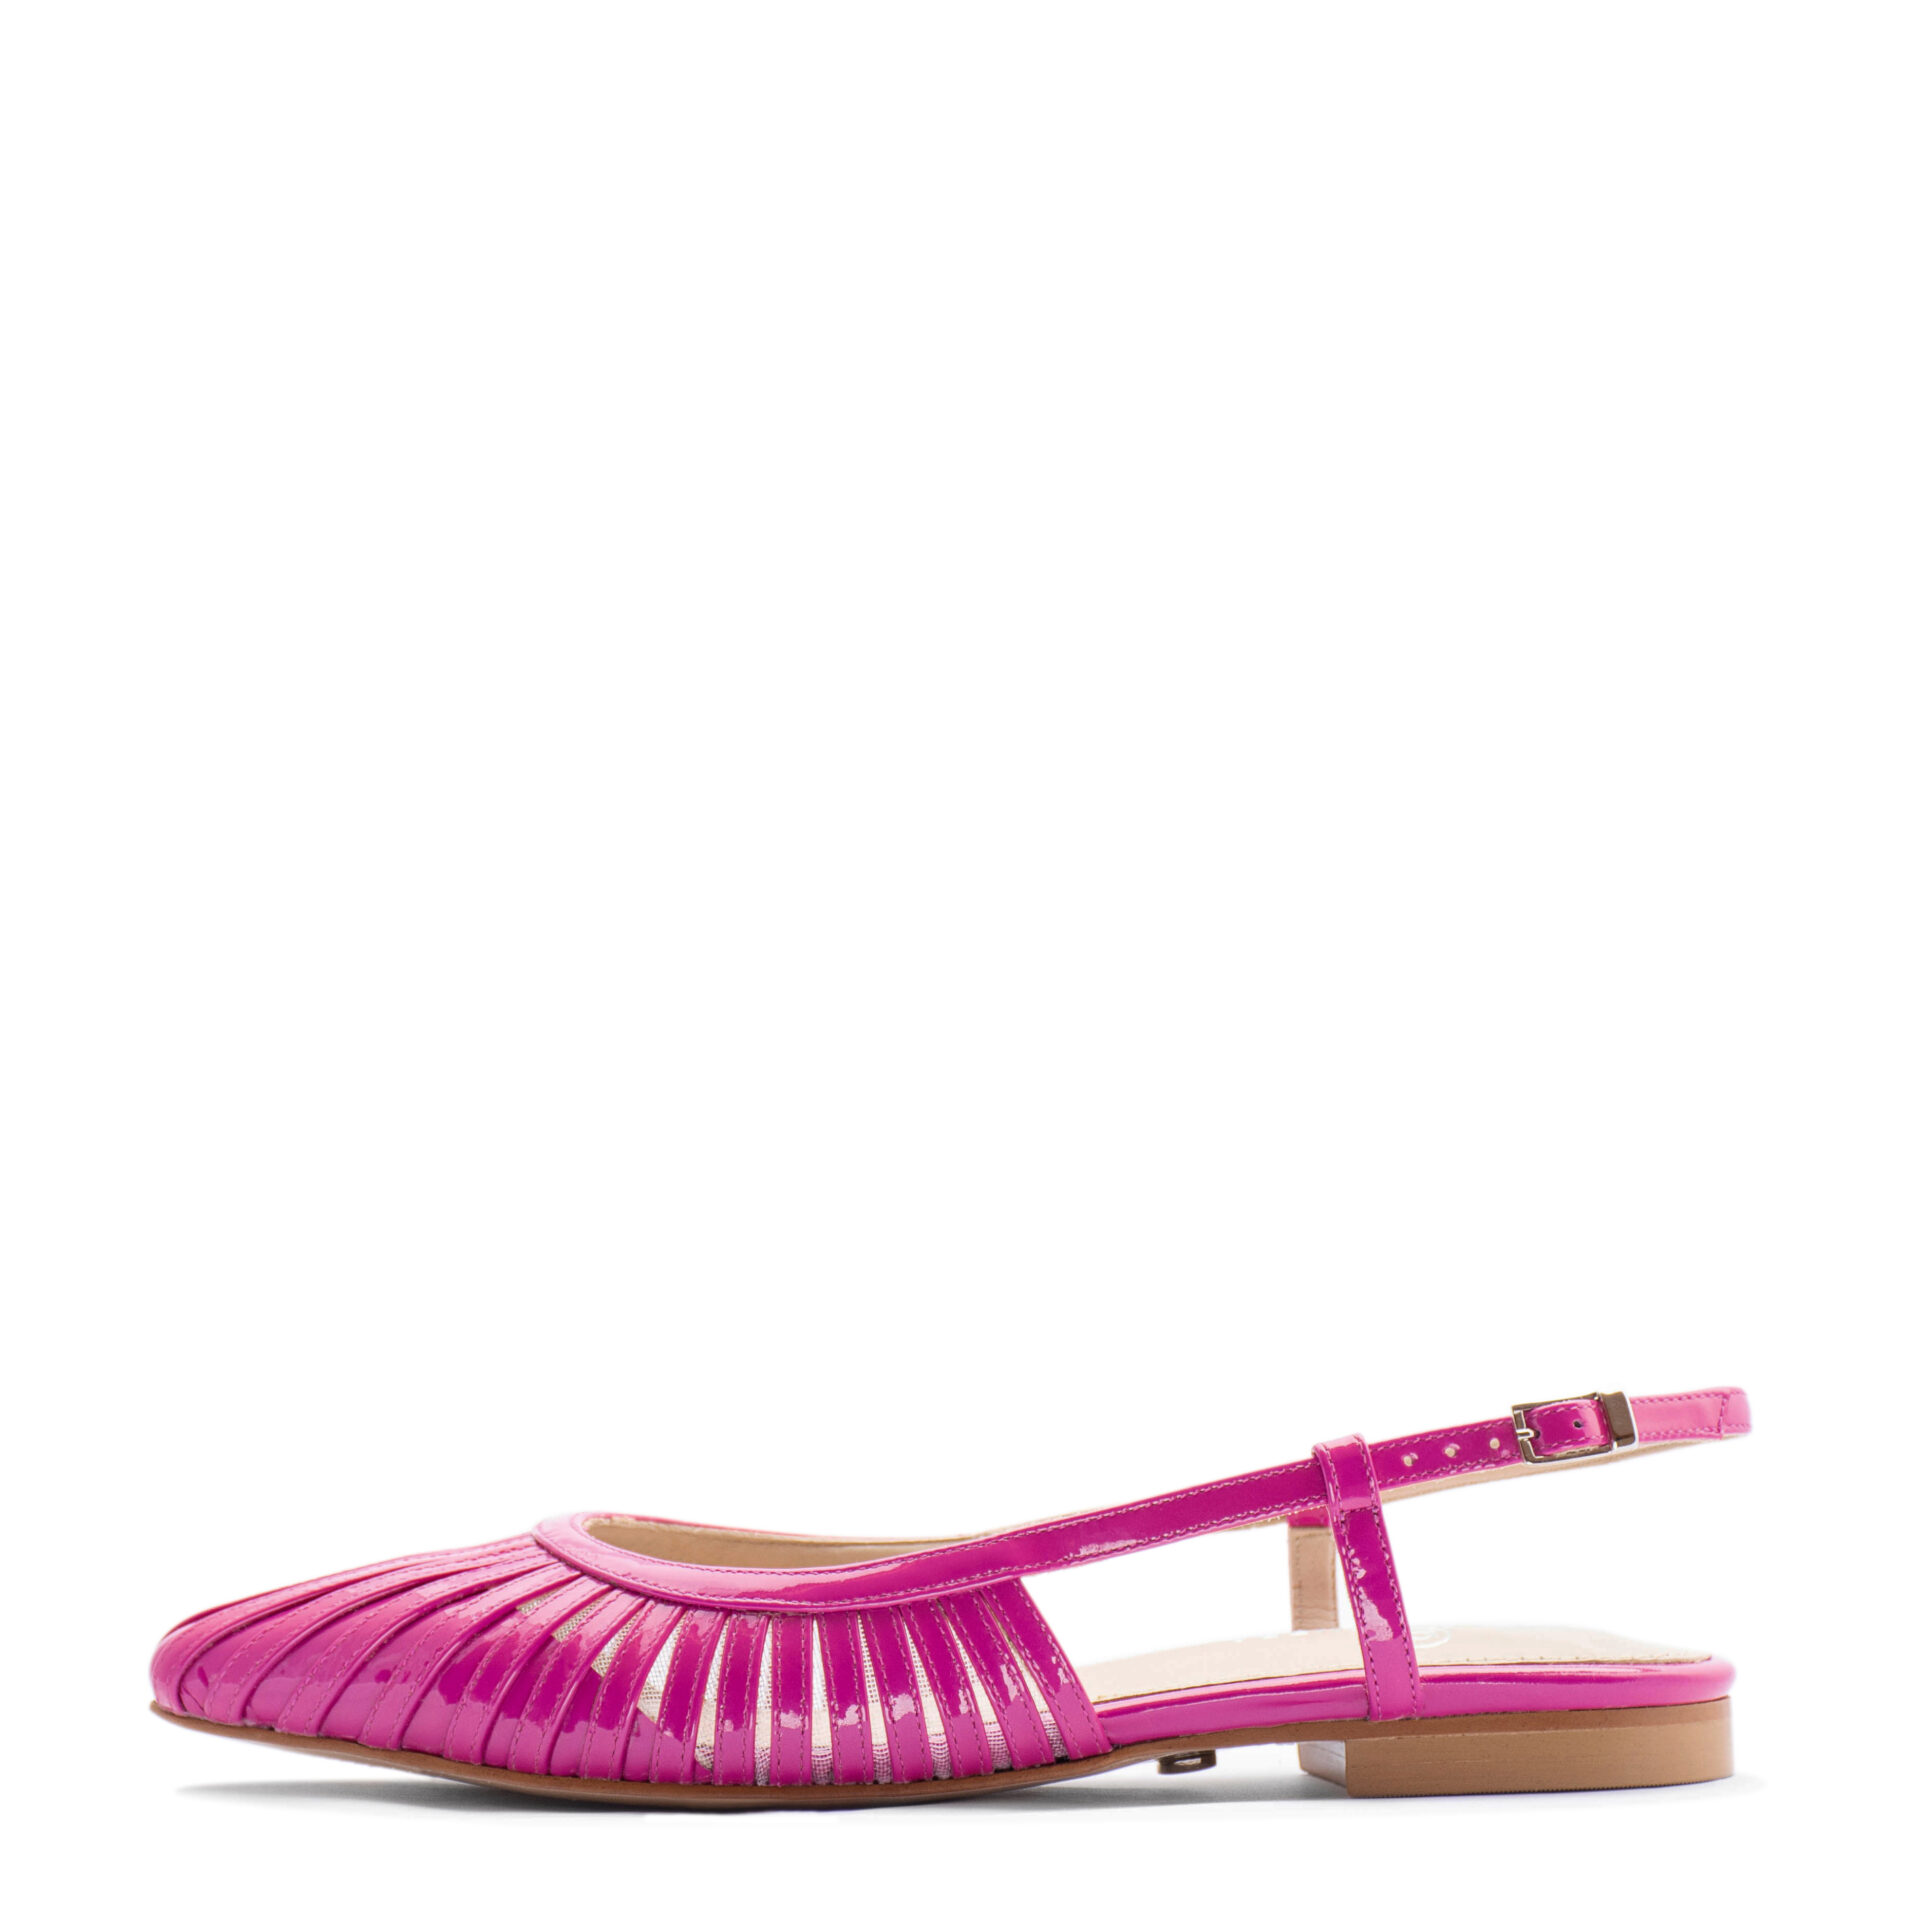 pink pointed toe flat bridesmaids shoes